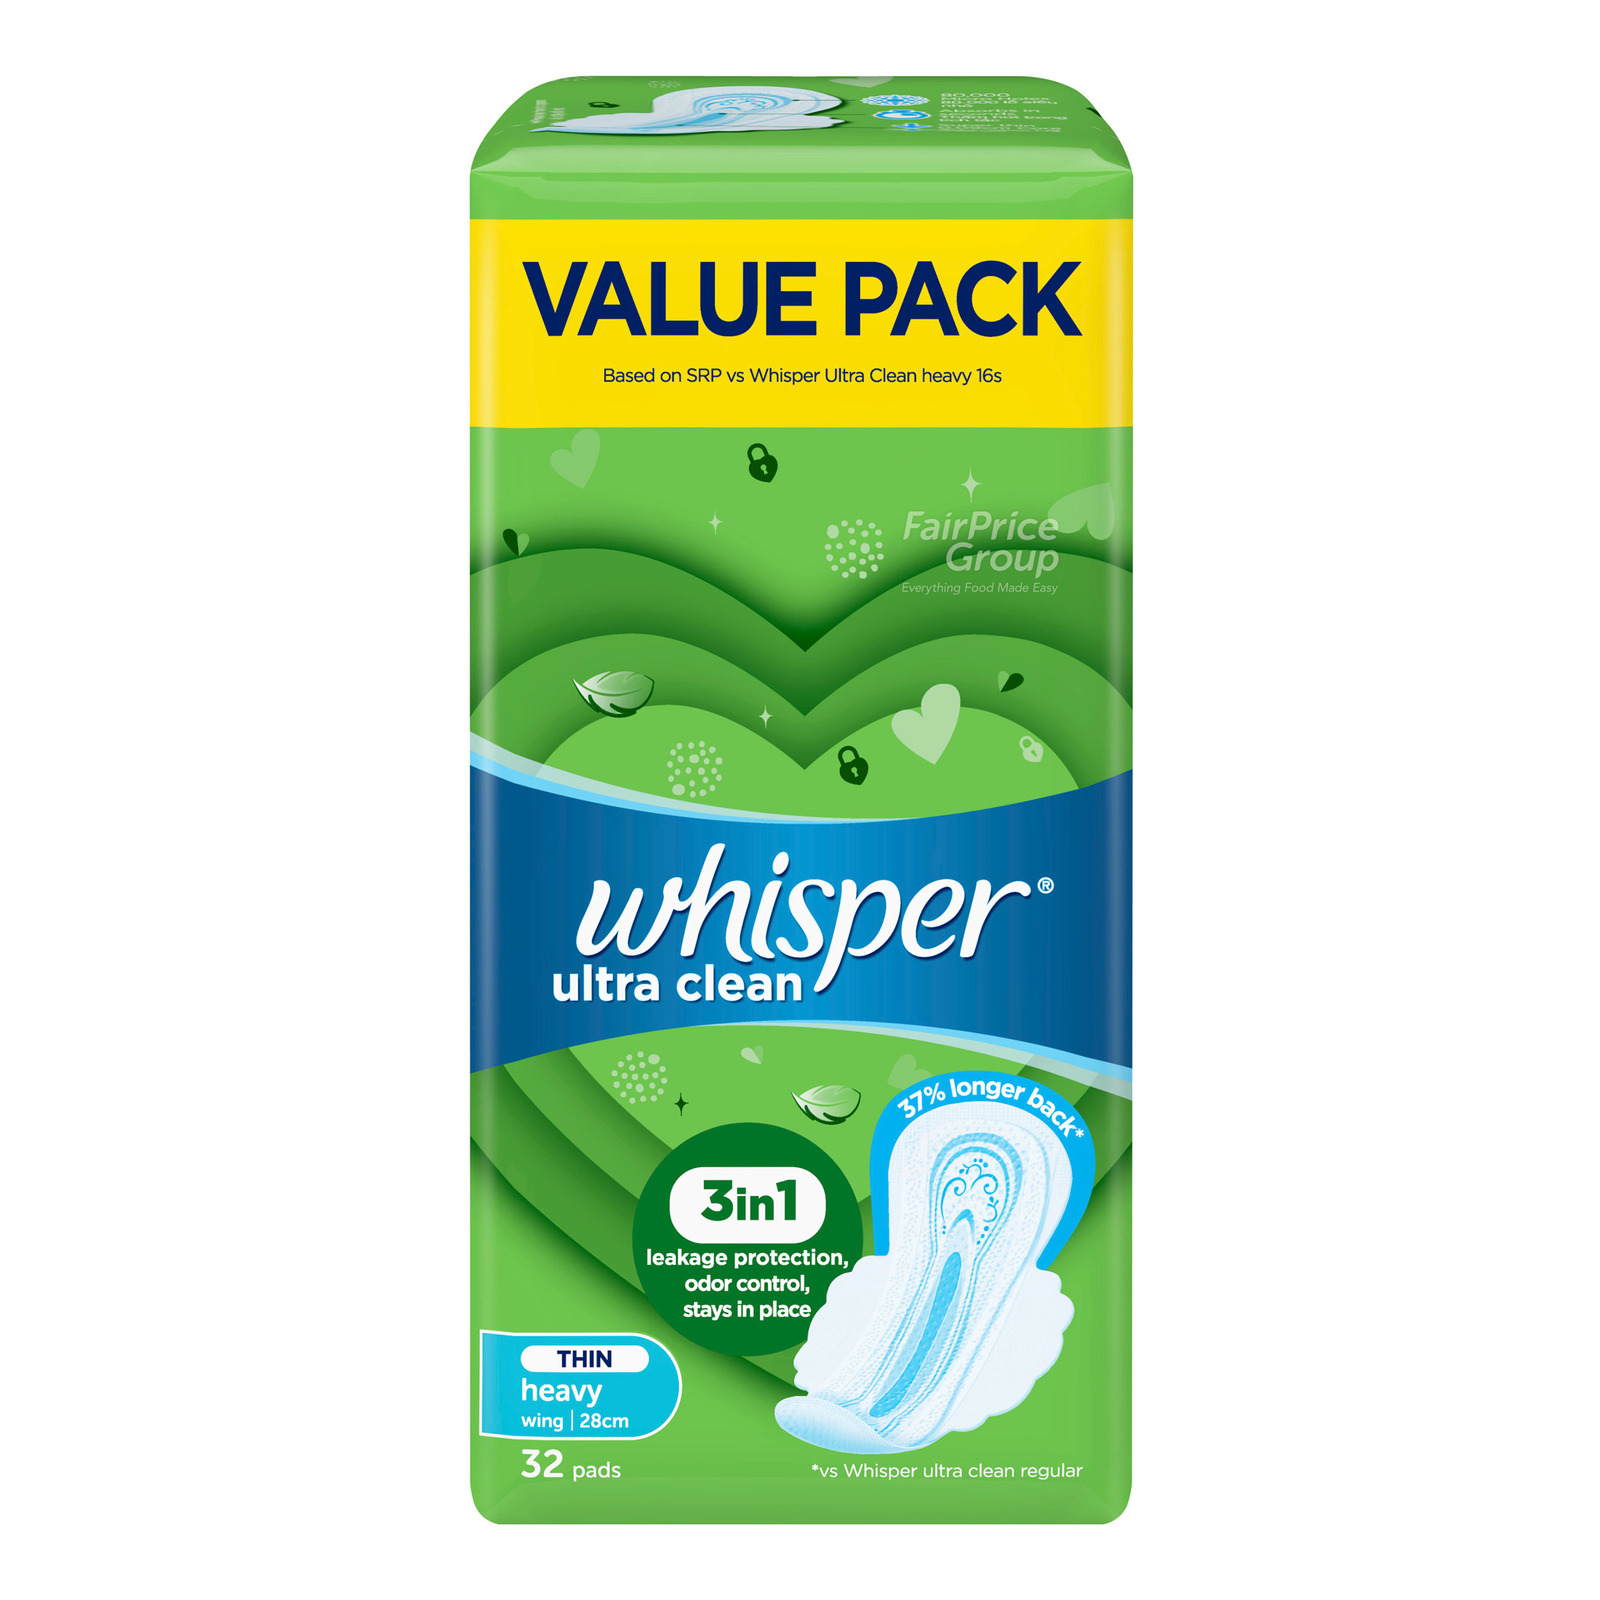 Whisper Ultra Clean Wing Pads - Normal/Heavy Day (28cm)